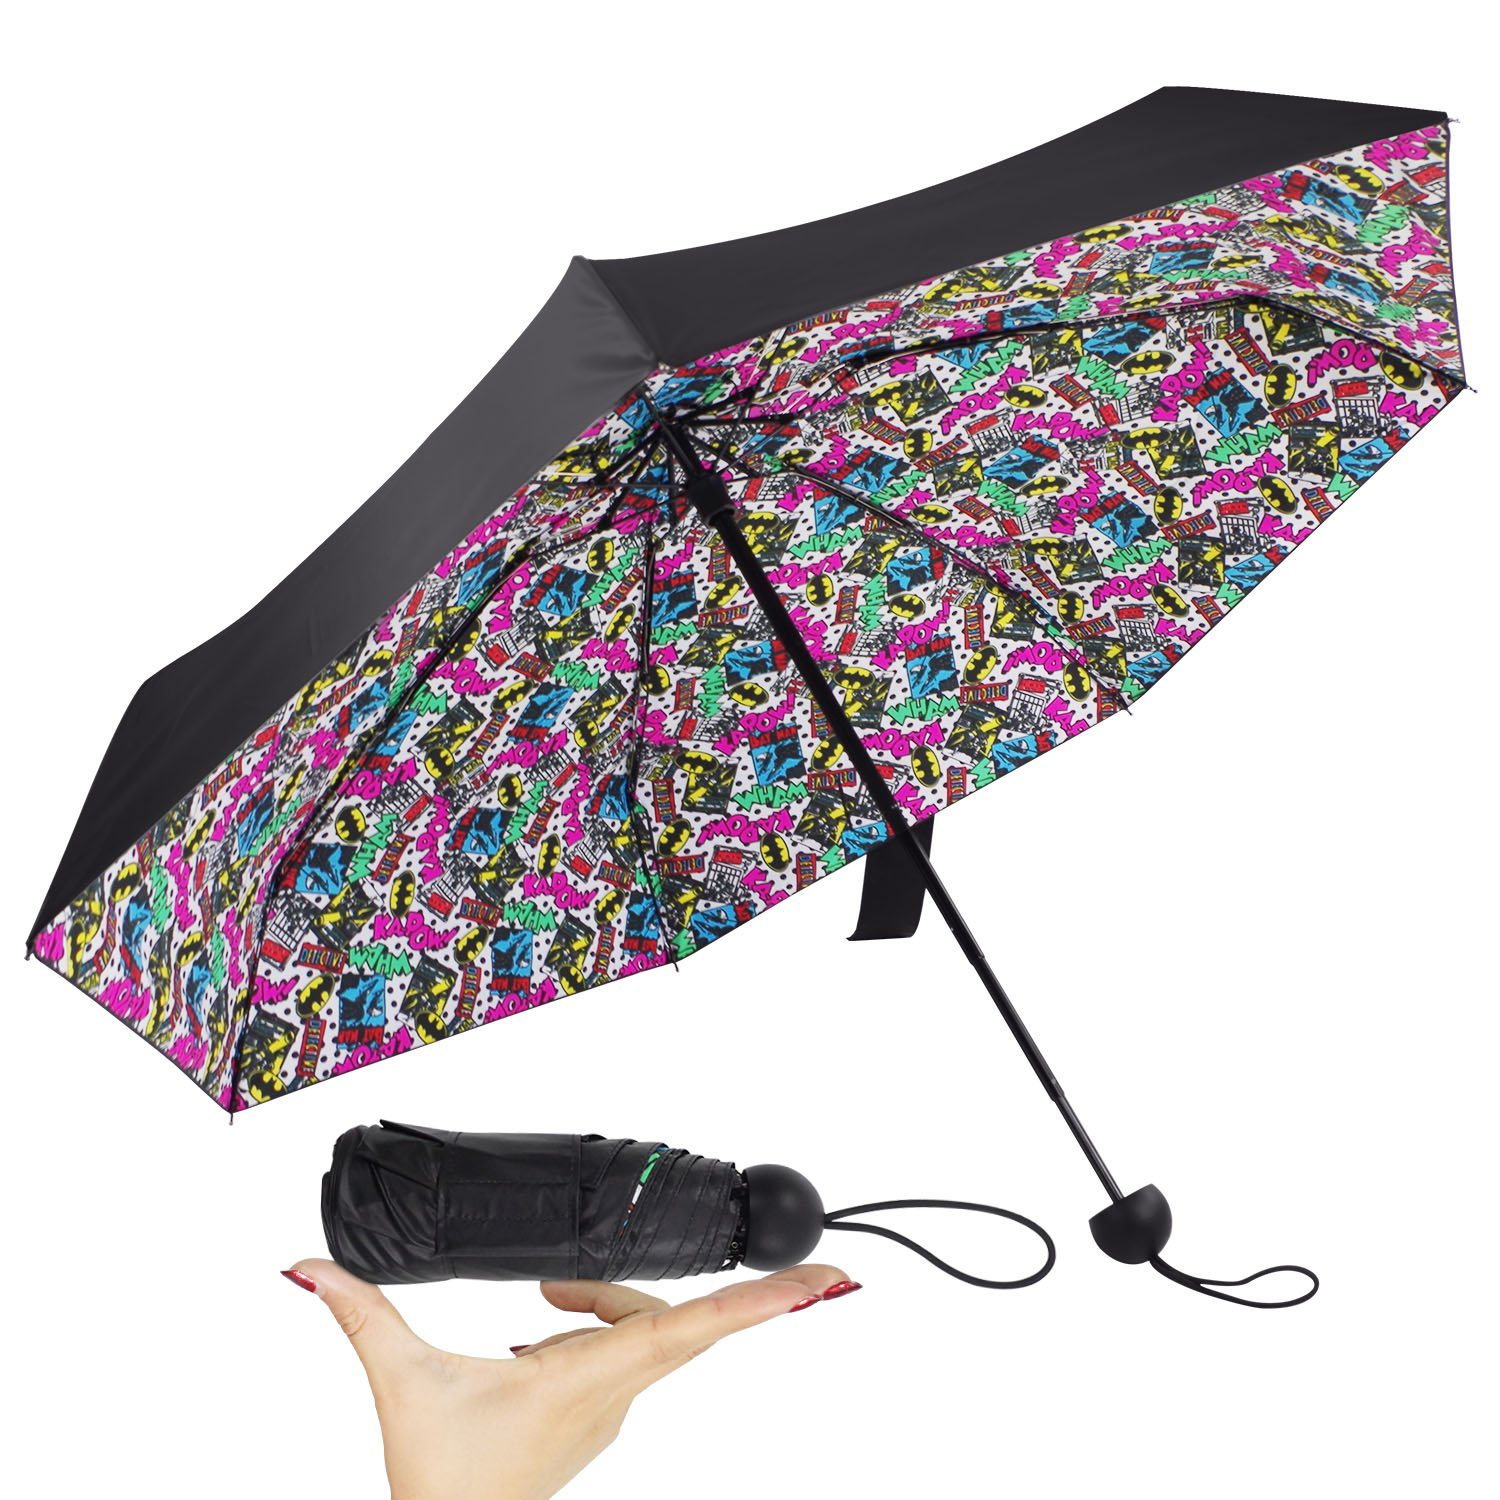 Small Compact Travel Umbrella Ultra Lightweight& Mini with UV Protaction Portable for Women